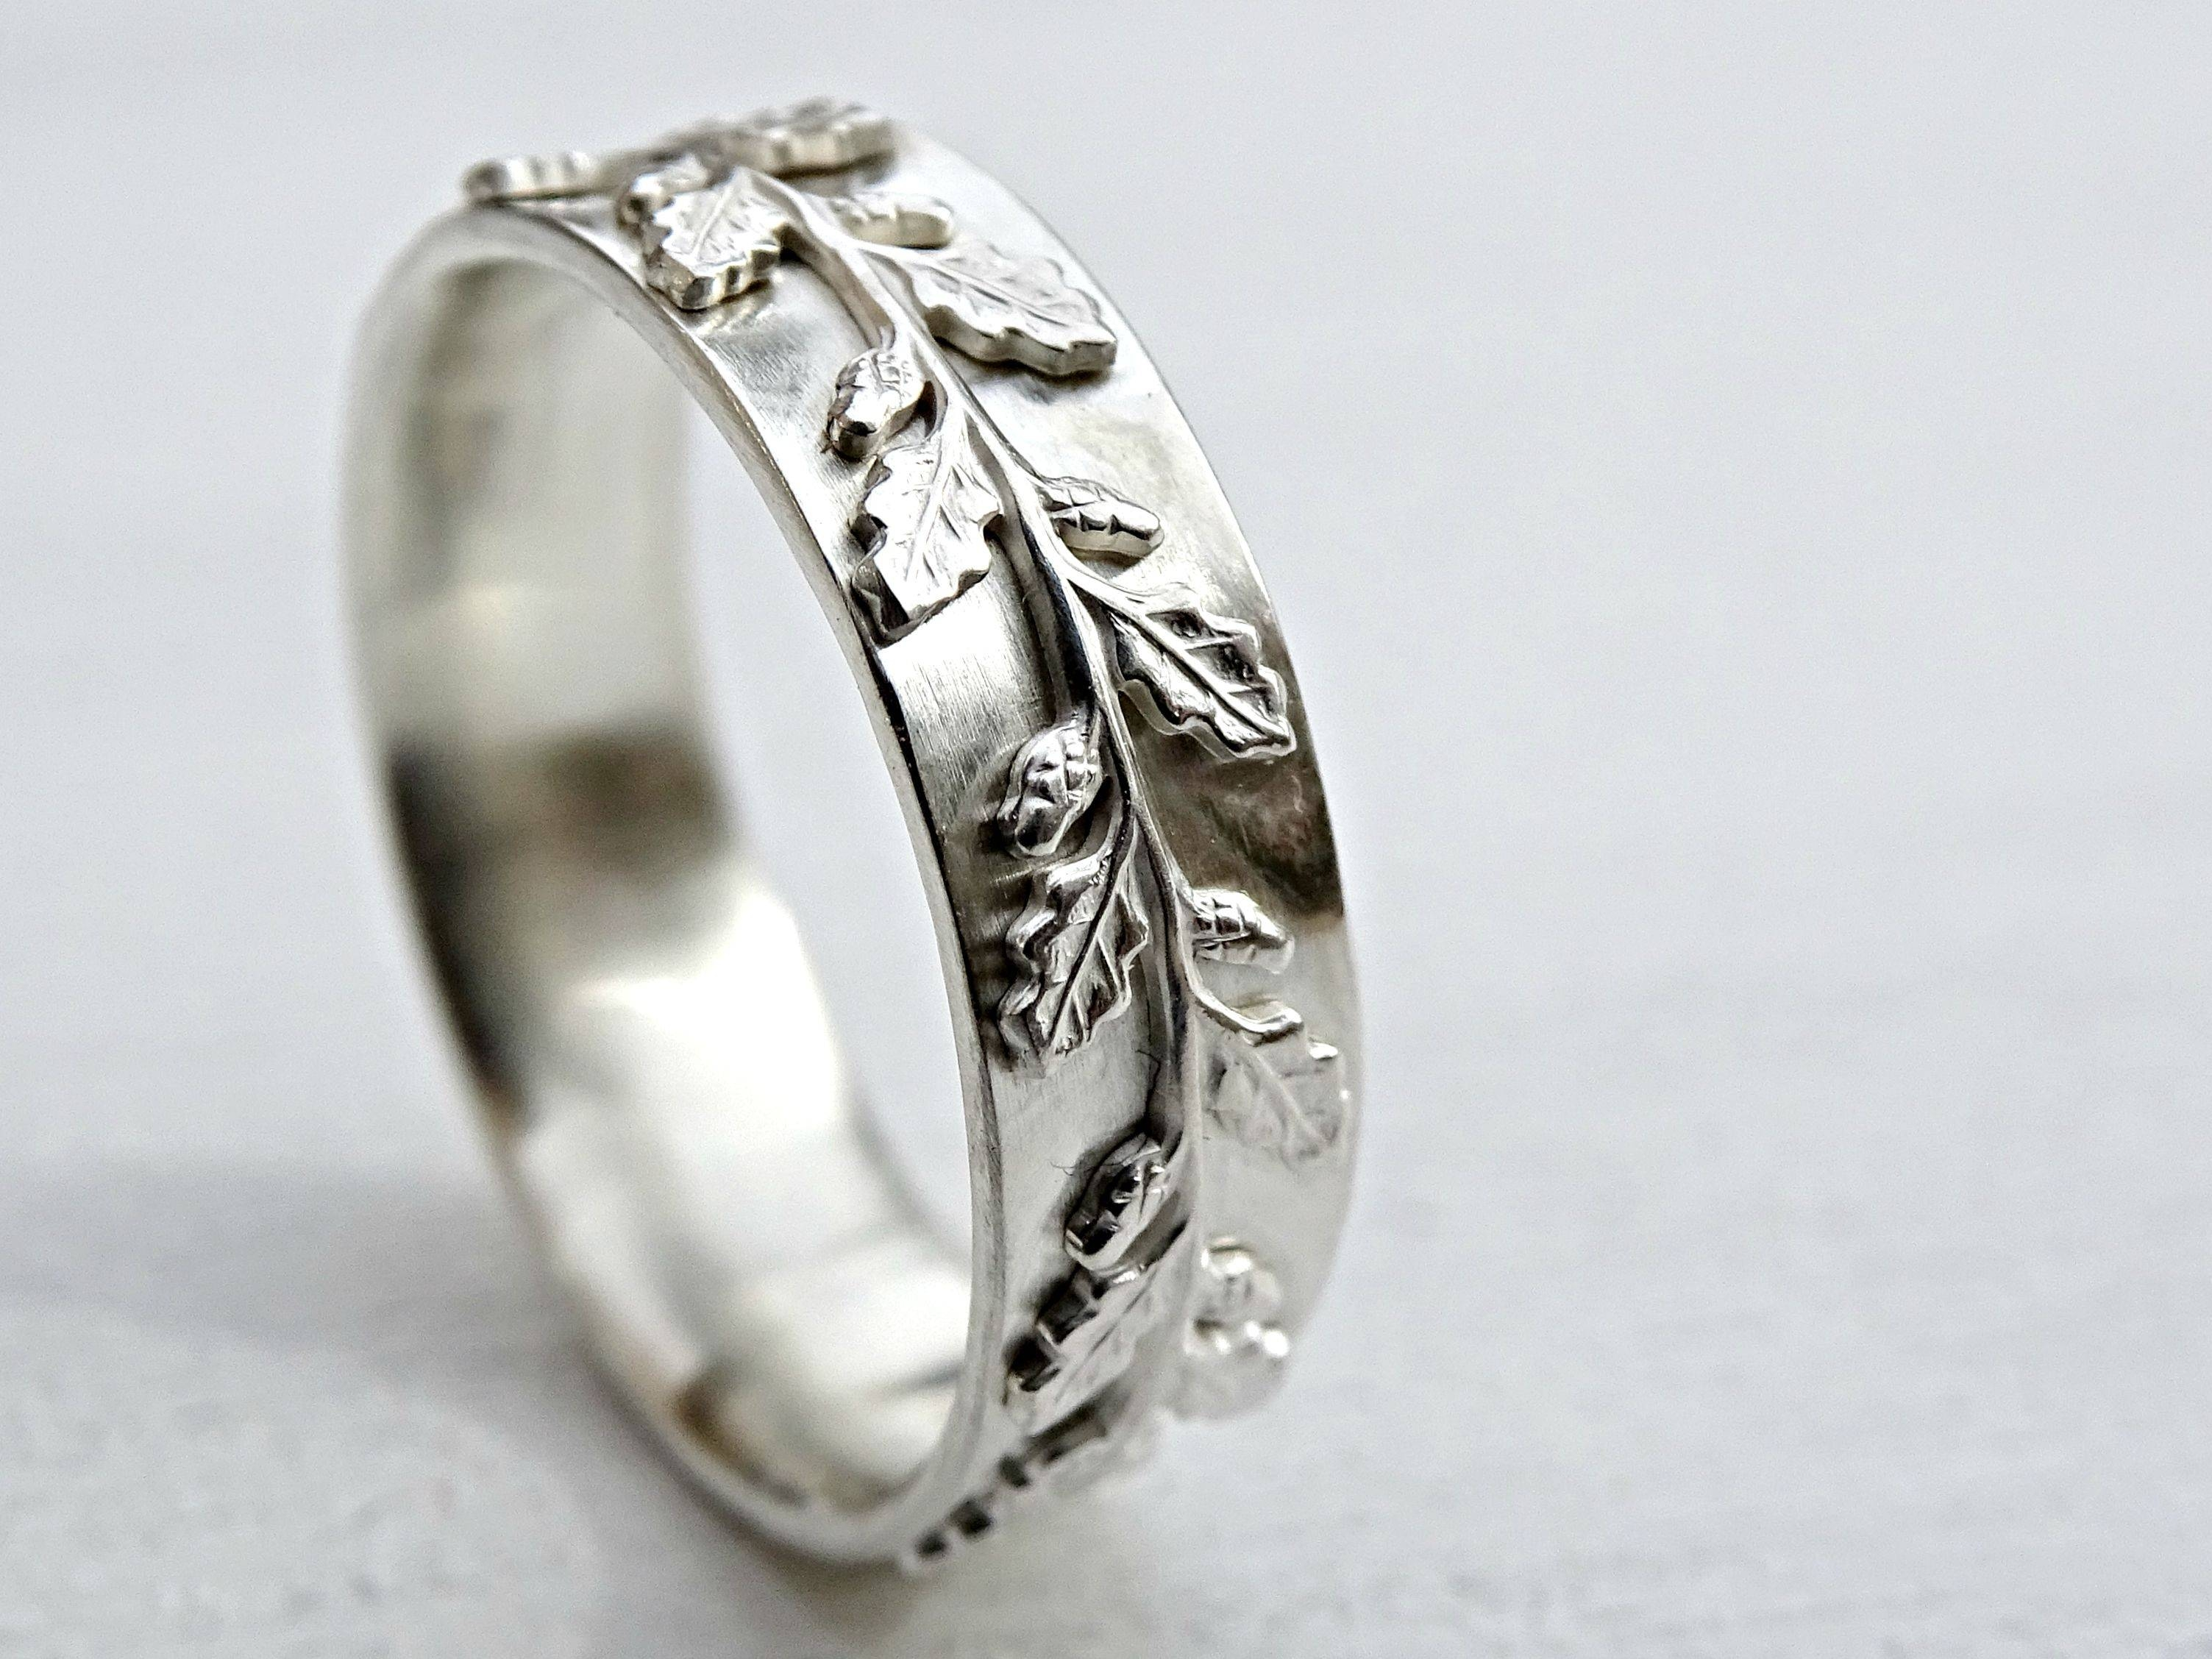 buy a custom made medieval wedding ring silver fairy tale wedding with pagan engagement rings - Pagan Wedding Rings